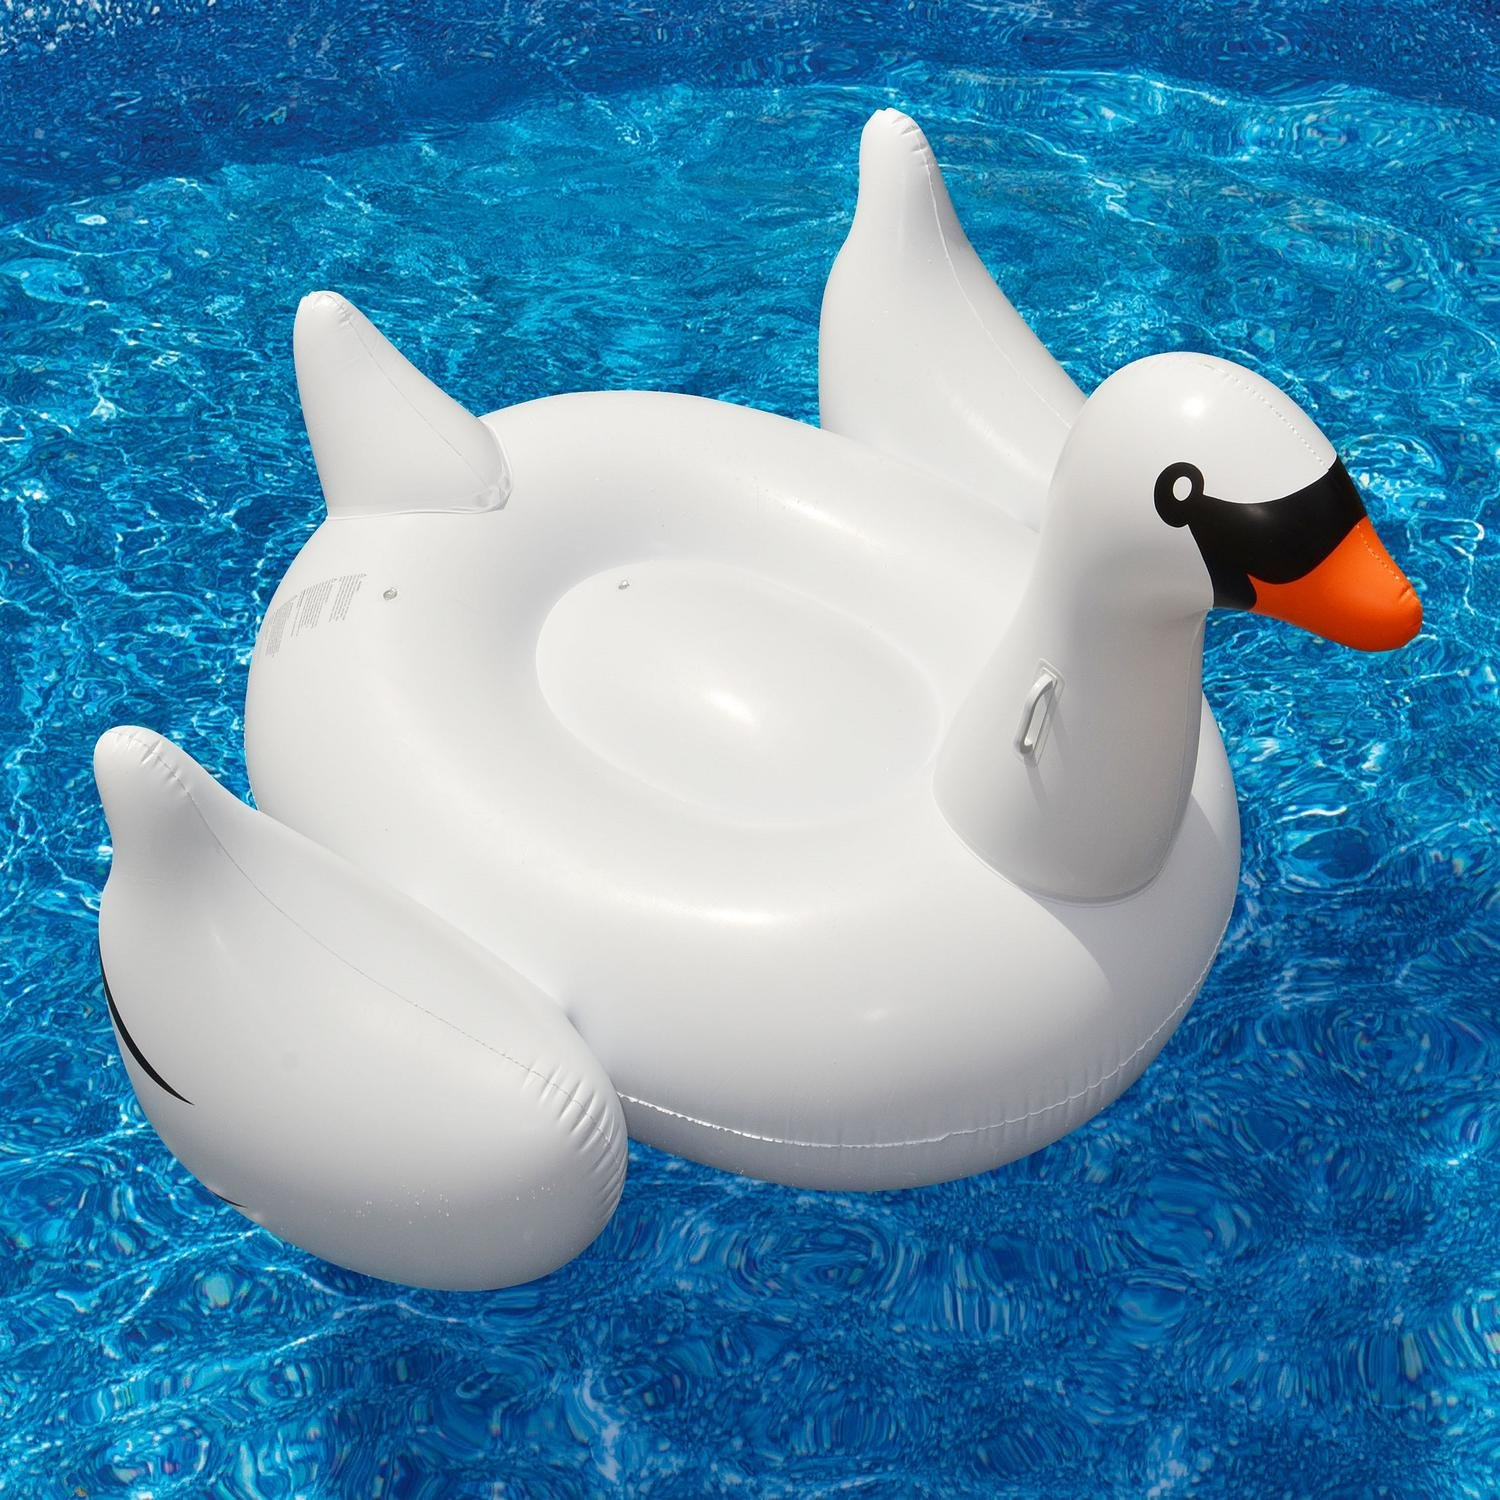 Swimline Giant Swan Inflatable Ride-On Pool Float Toy | 75"|1500|1500|?|en|2|338f7cbbec212548fa674598eb774ecc|False|UNLIKELY|0.372283935546875